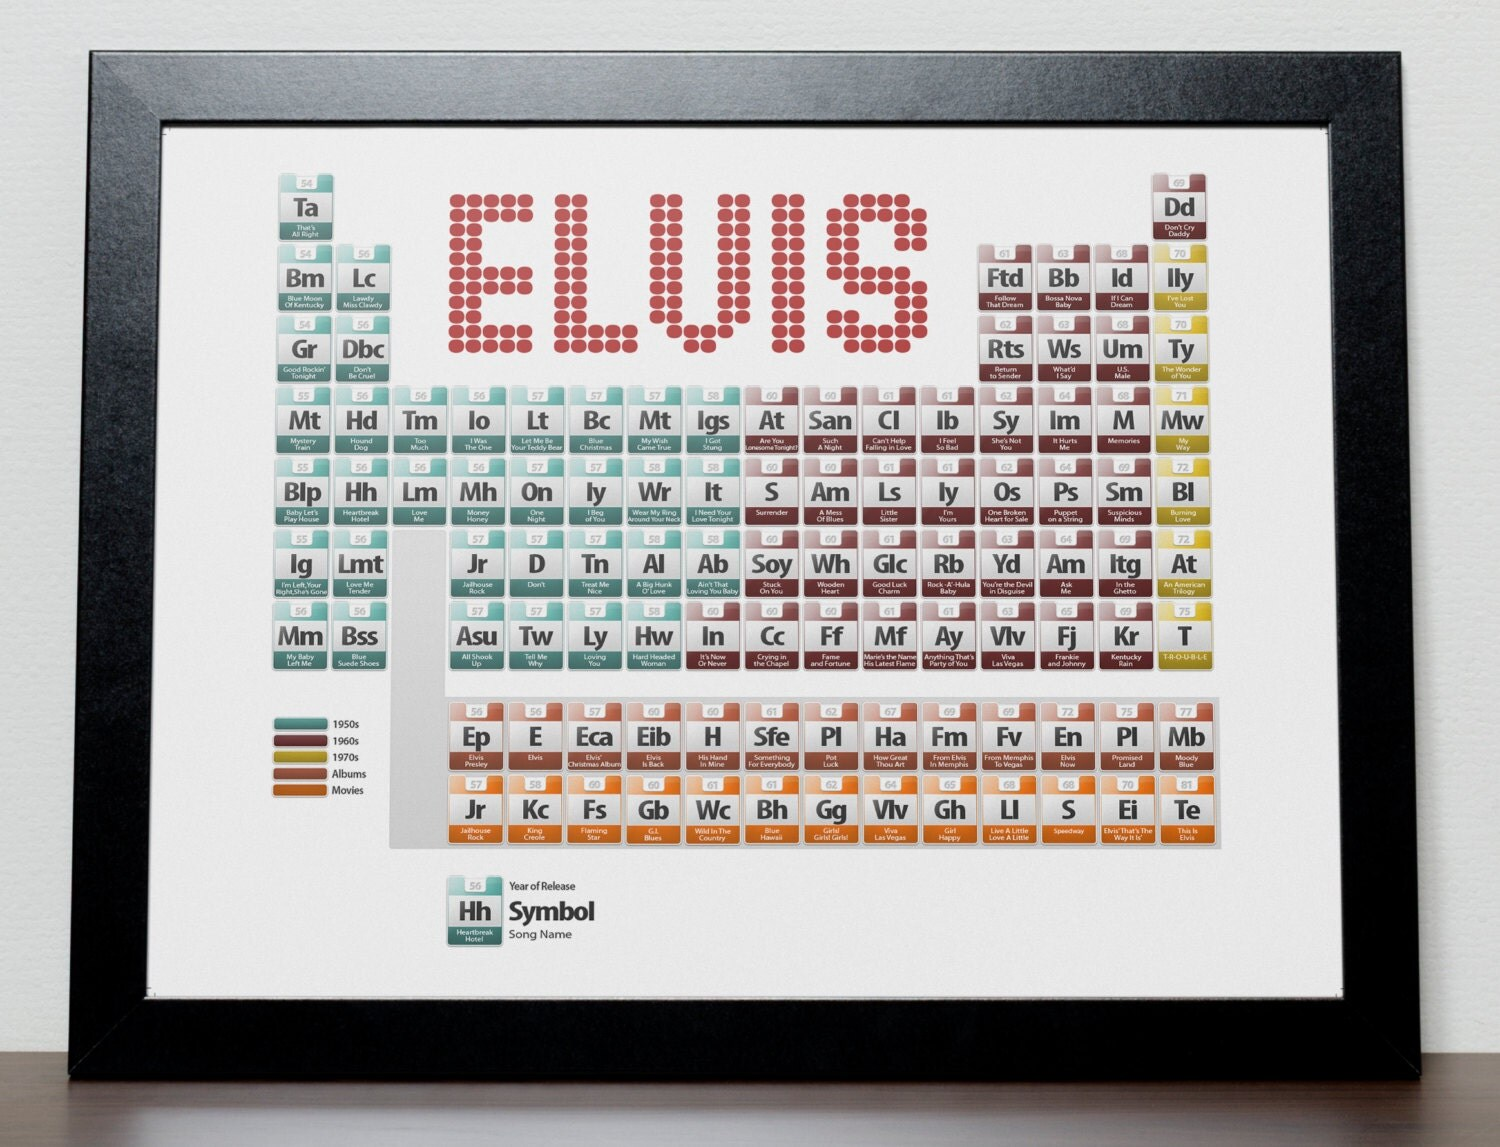 Elvis presley discography periodic table poster urtaz Images